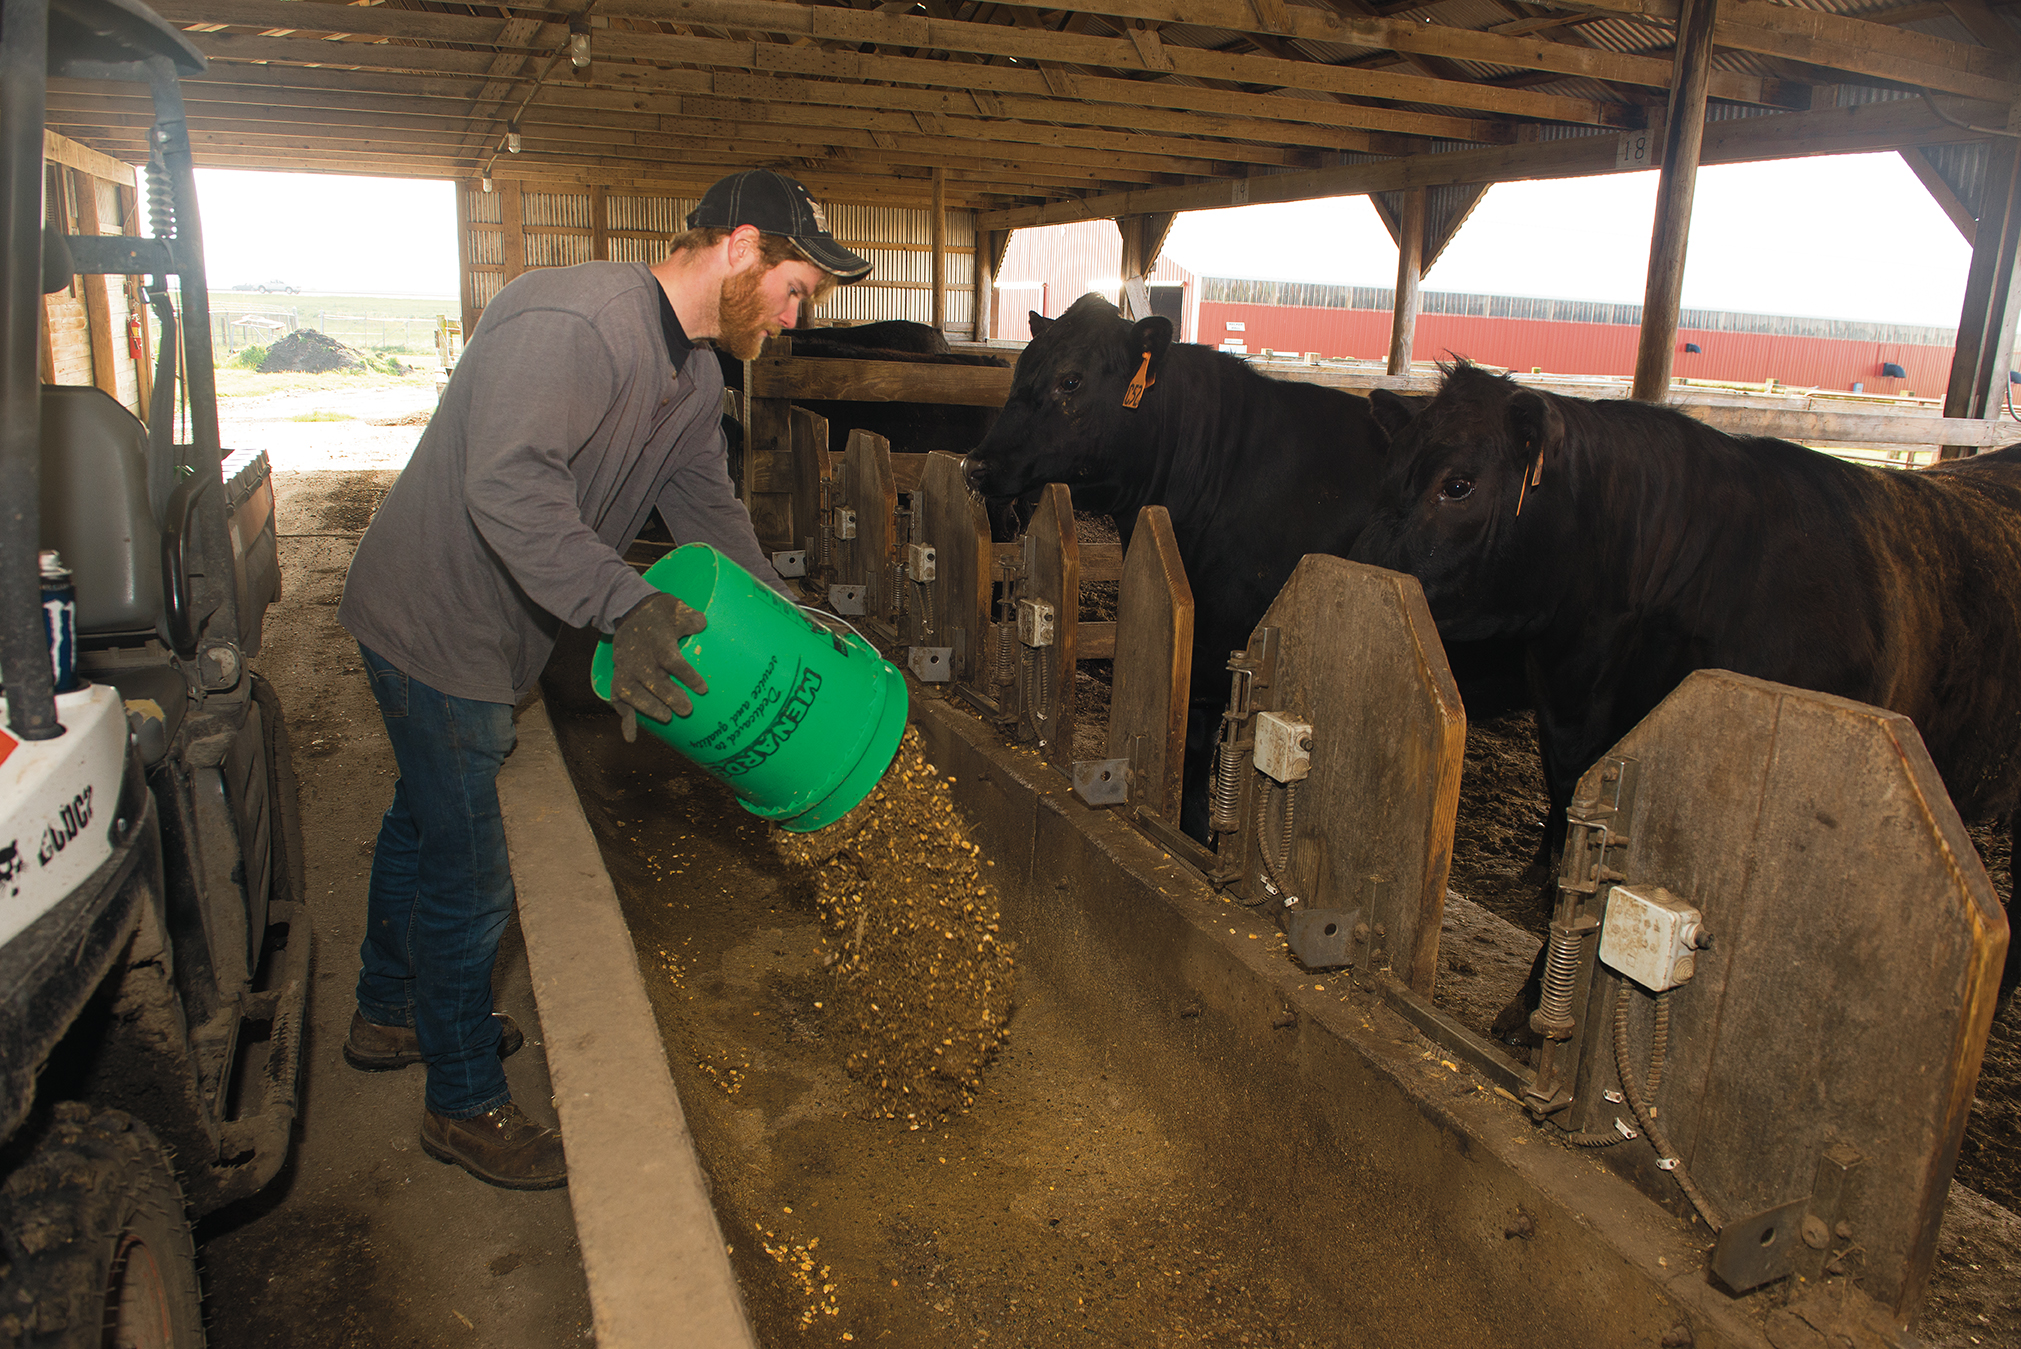 Parmenter pours the feed into bunks, from which the cattle ate throughout the day. During the study, Parmenter filled the bunks between 7 and 8 a.m. every day and allocated about 35 pounds of feed to each animal.